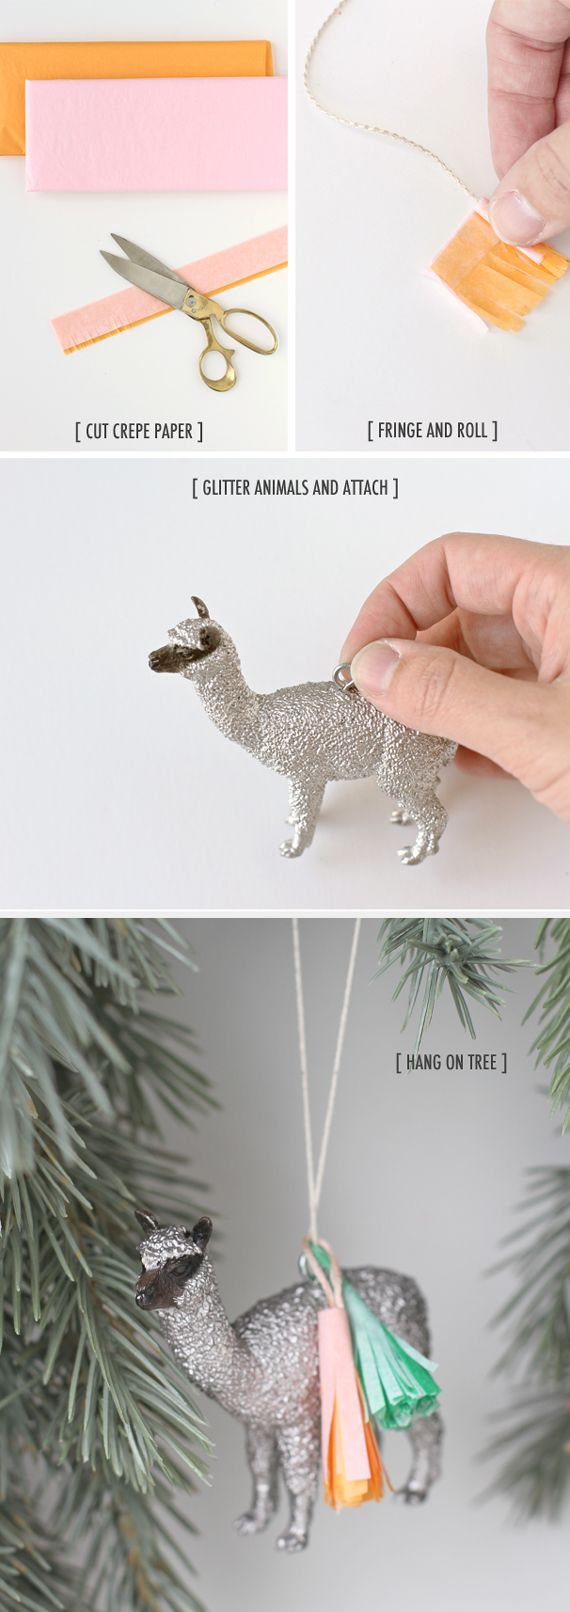 Glitter llama, glitter llama, glitter llama! (sorry, we're just really excited about #DIY glitter llama ornaments)